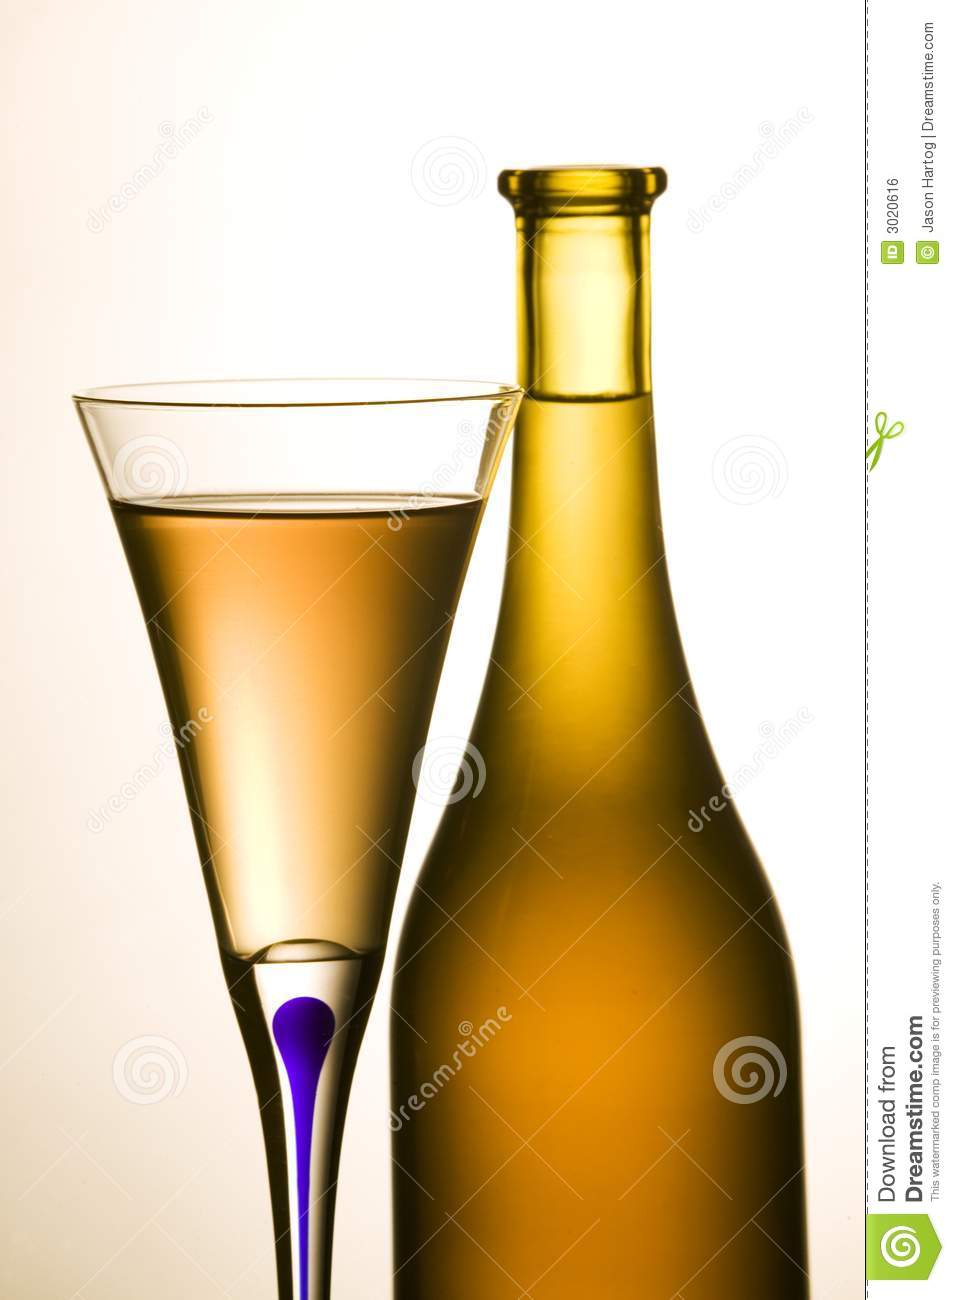 Wine bottle and wine glass royalty free stock image for Wine bottle glass